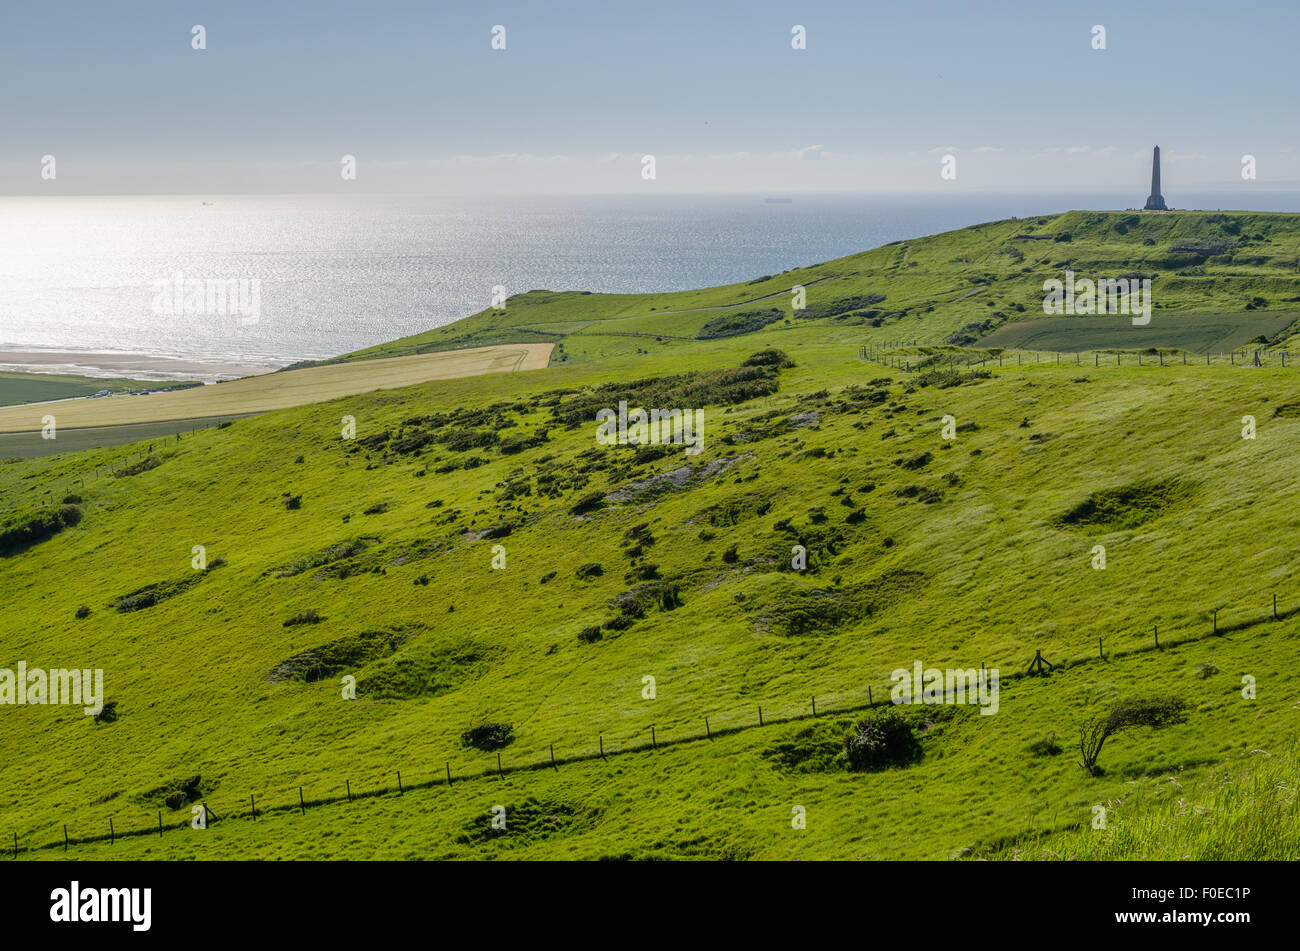 Sunset view of Cap Blanc Nez cliffs, obelisks, and Channel sea, with bomb craters in the fields. - Stock Image